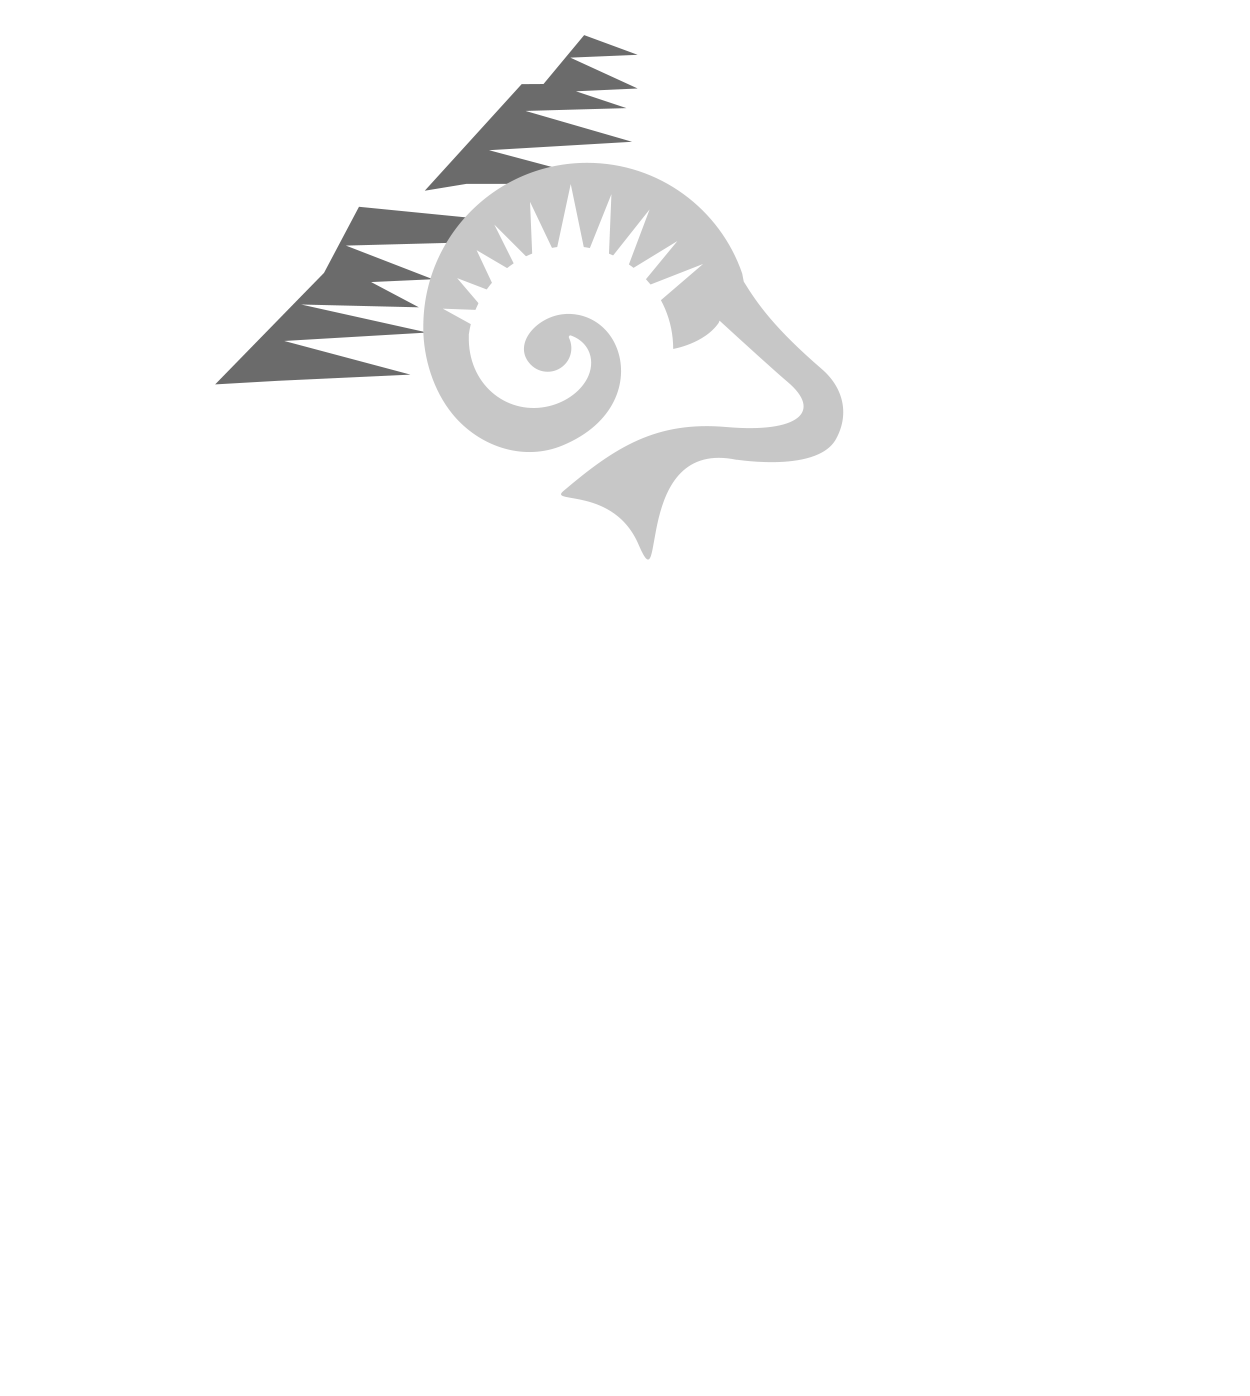 Destination Dubois